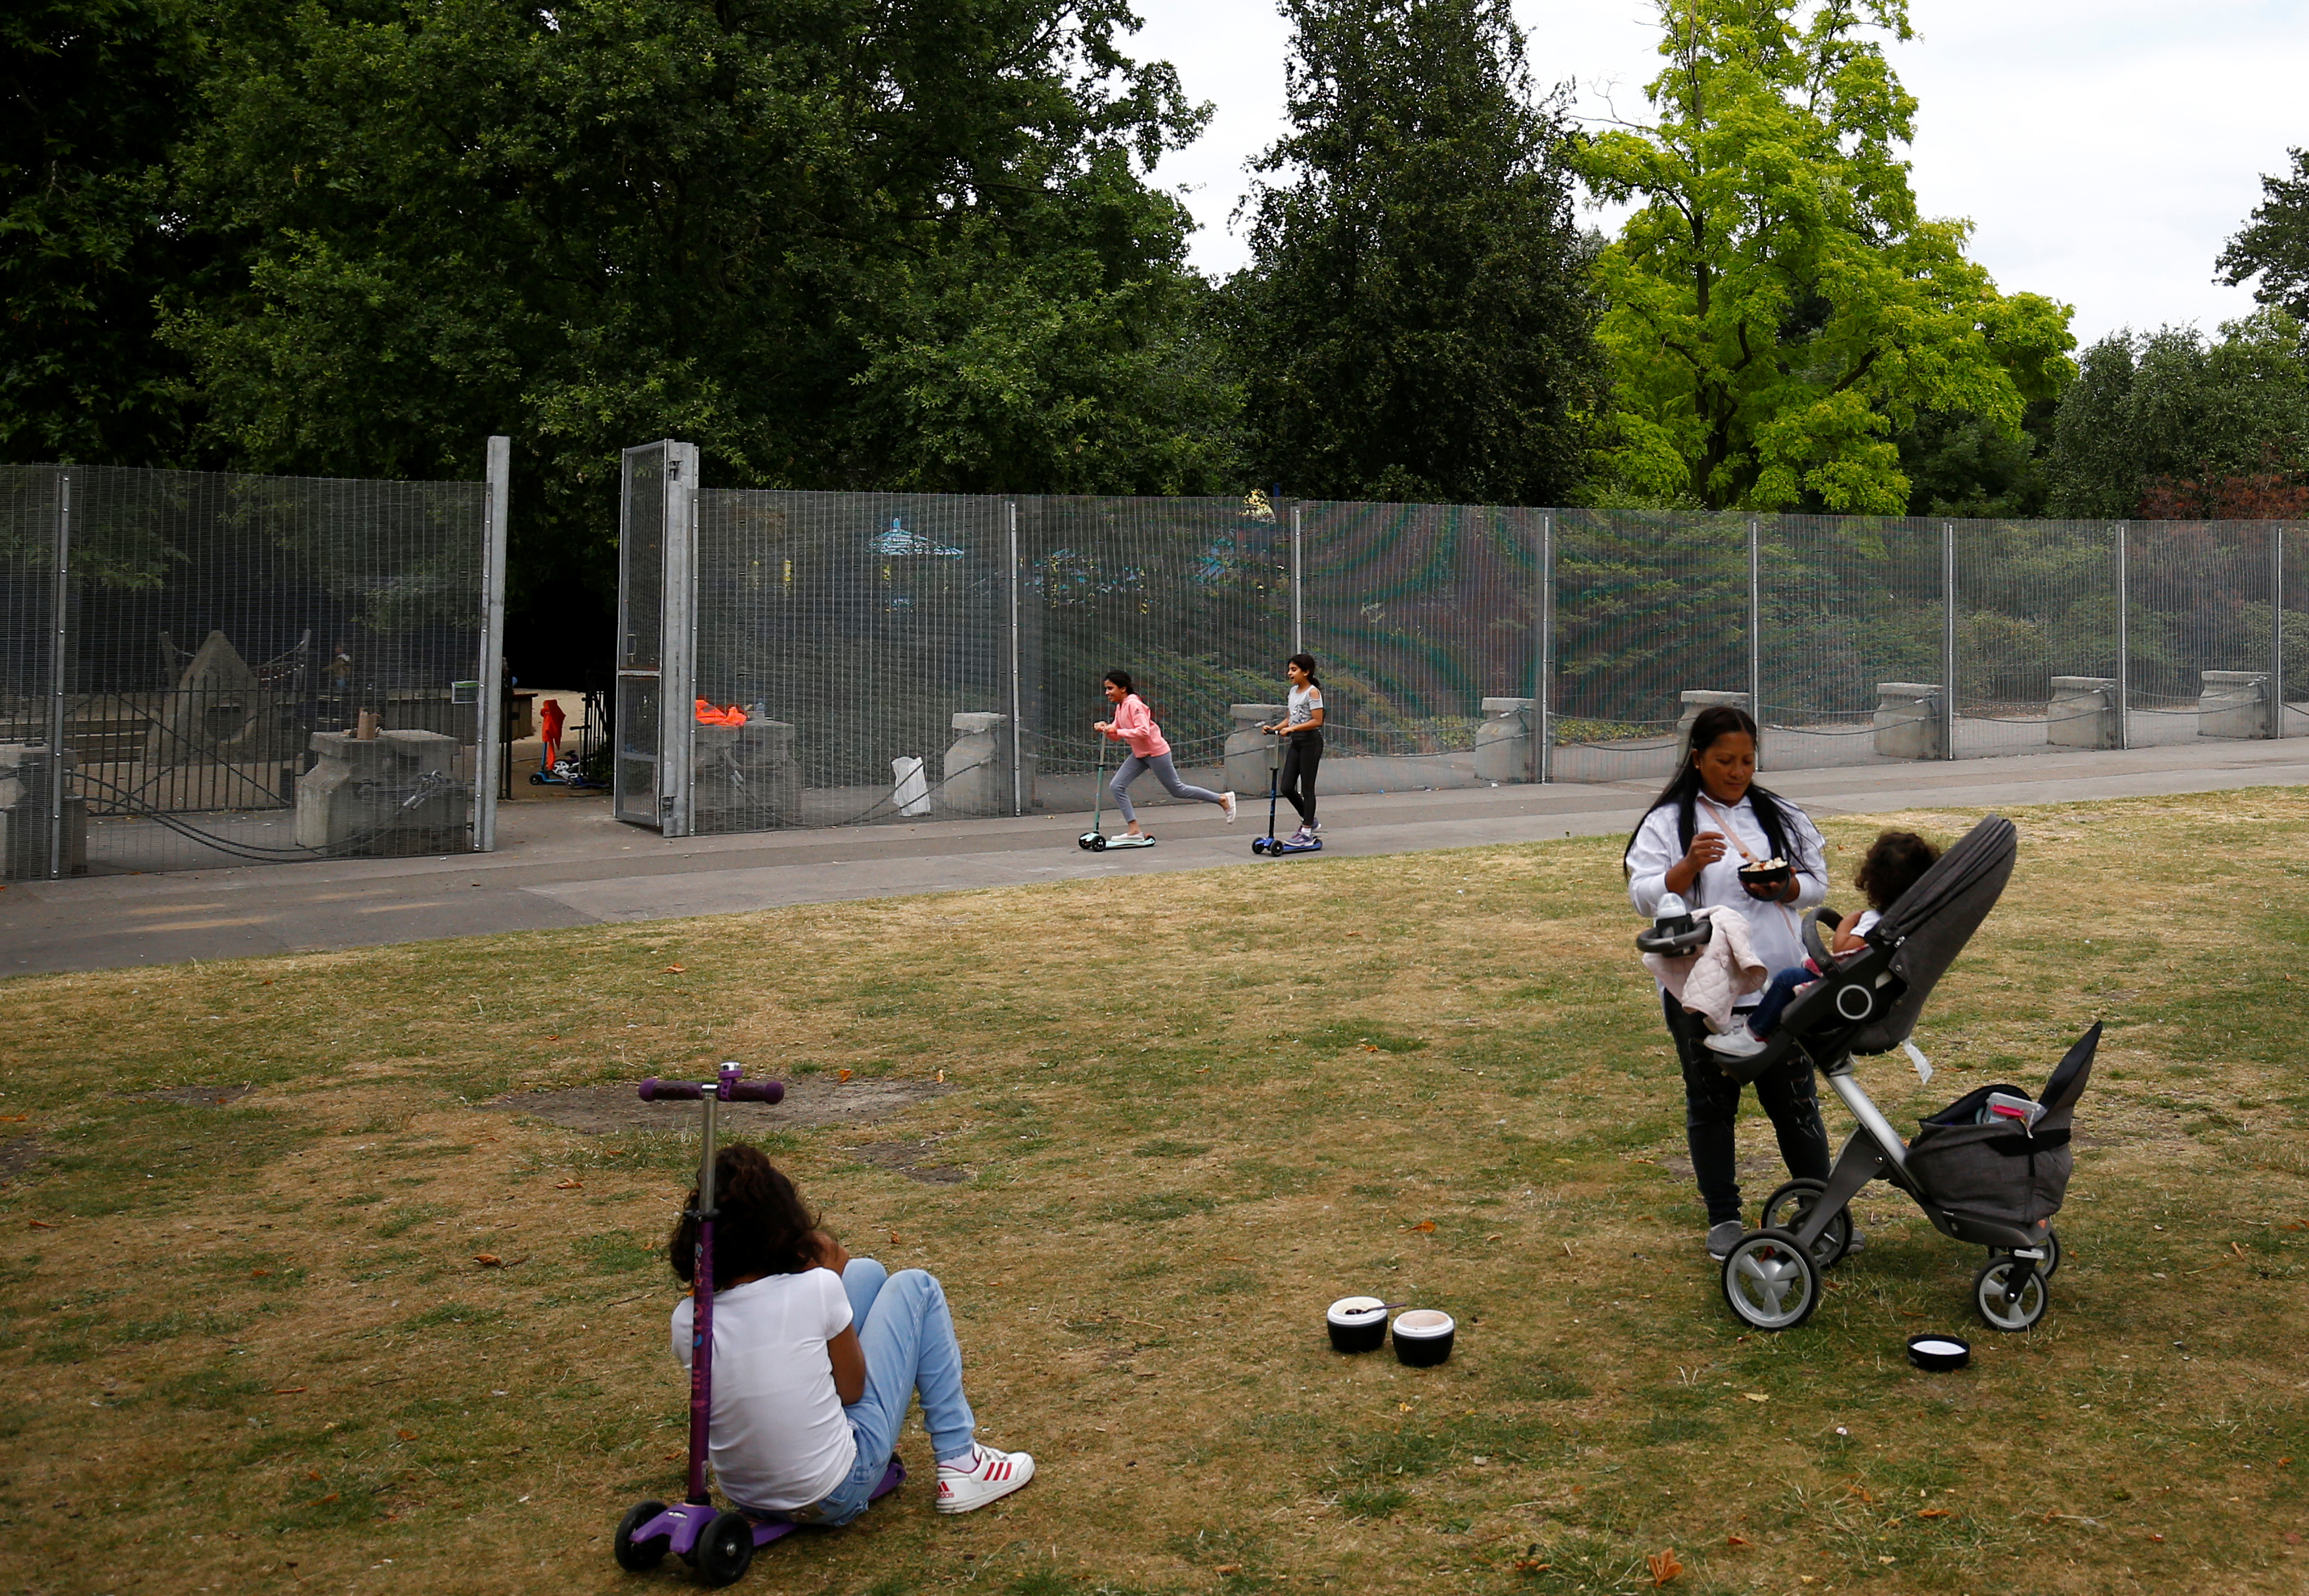 Visitors to the park use a special gate to pass through fences, that have been erected before the U.S. presidential visit at the end of the week, around the U.S. ambassador's residence in Regent's Park in London, Britain, July 10, 2018. REUTERS/Henry Nicholls - RC17948966D0